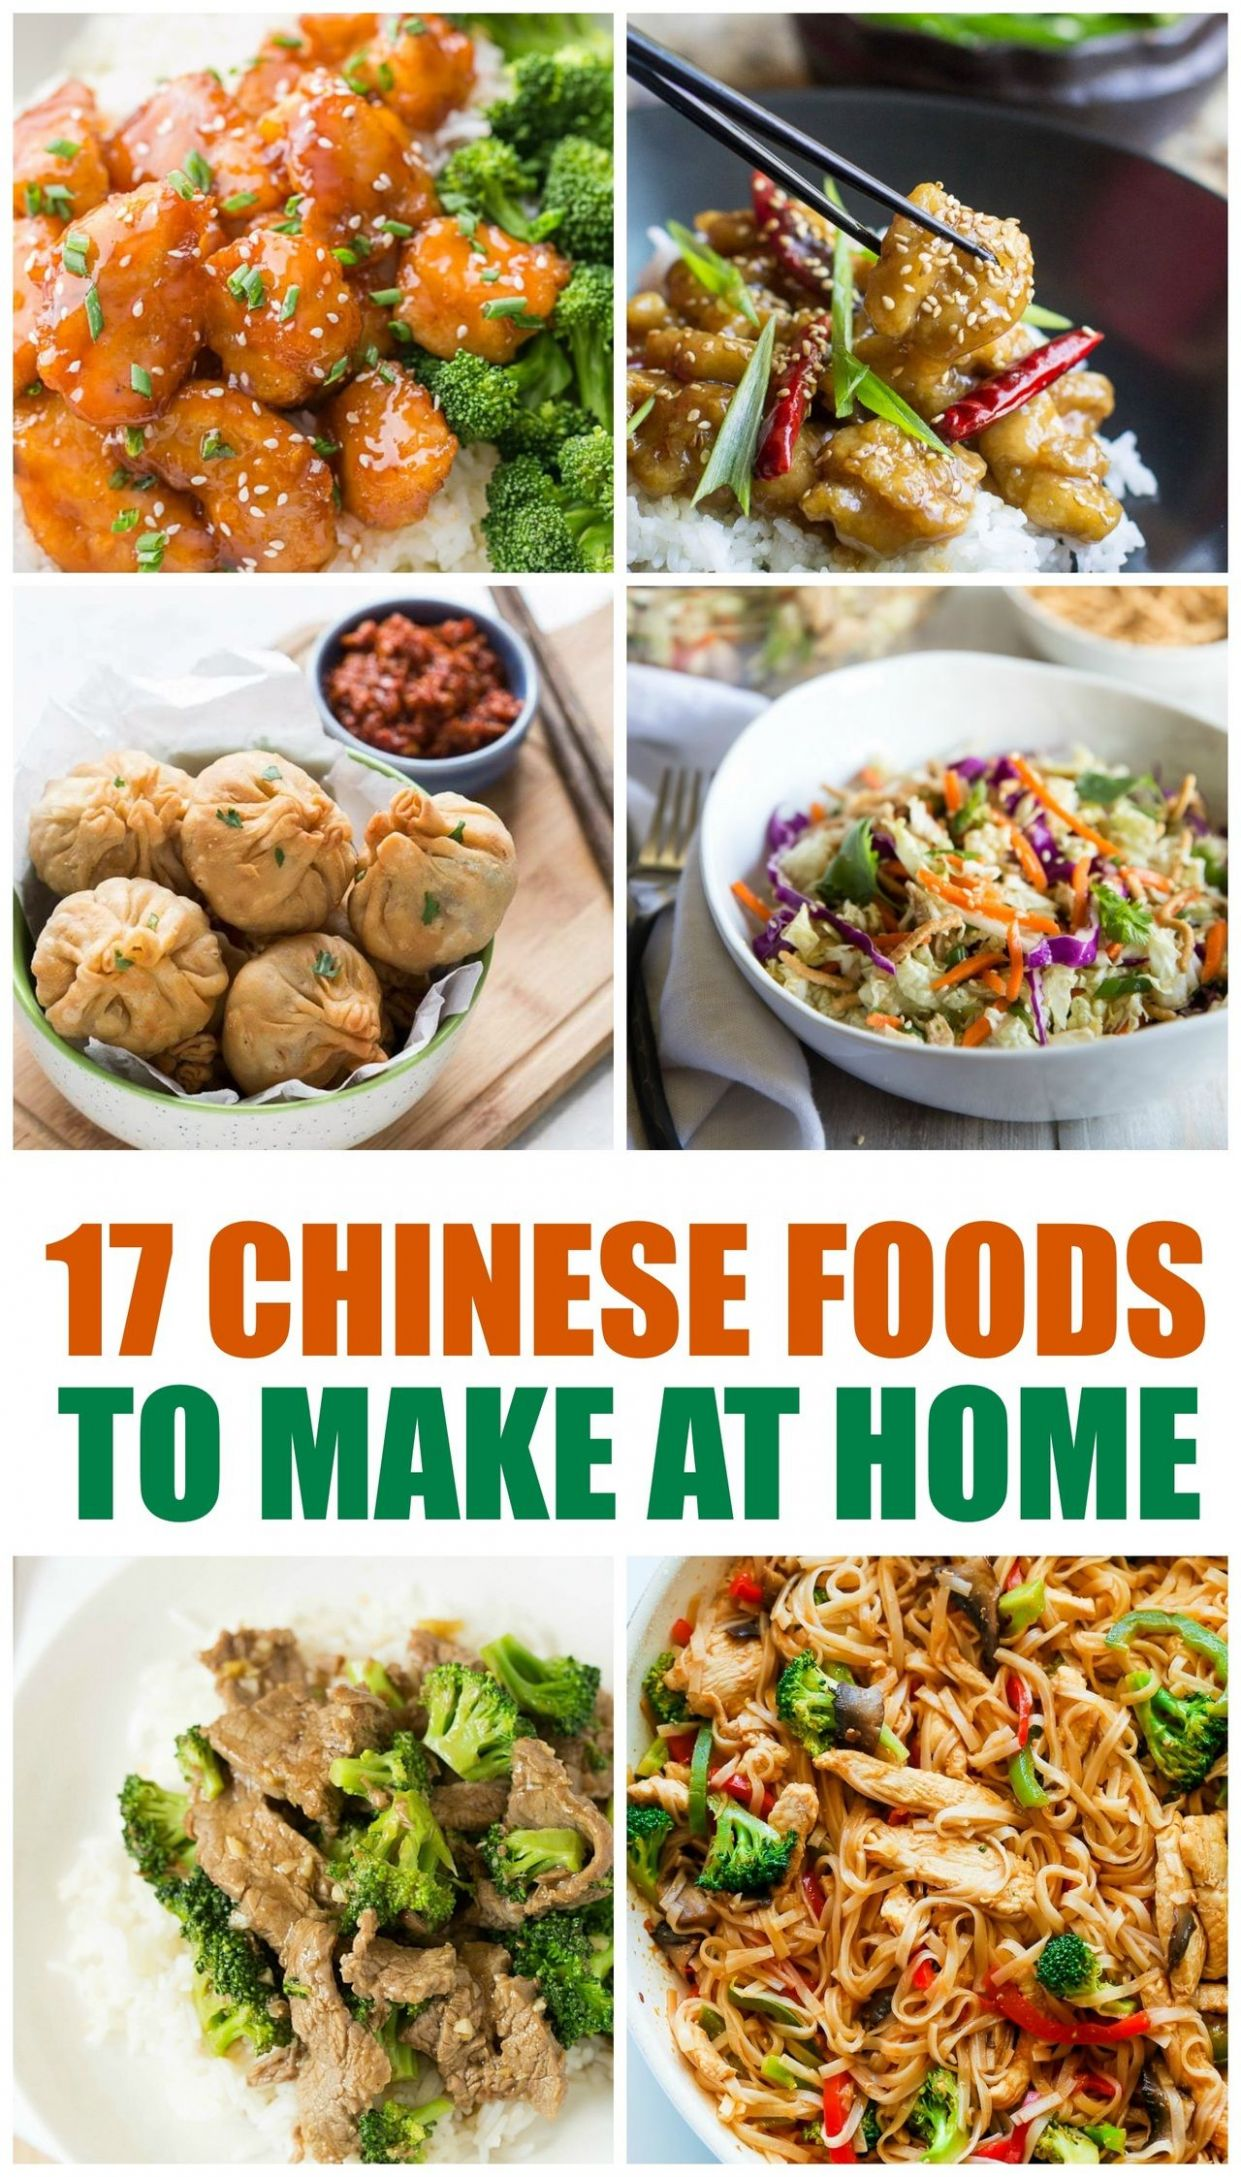 9 Must Try Chinese Food Recipes You Can Make at Home | Healthy ...